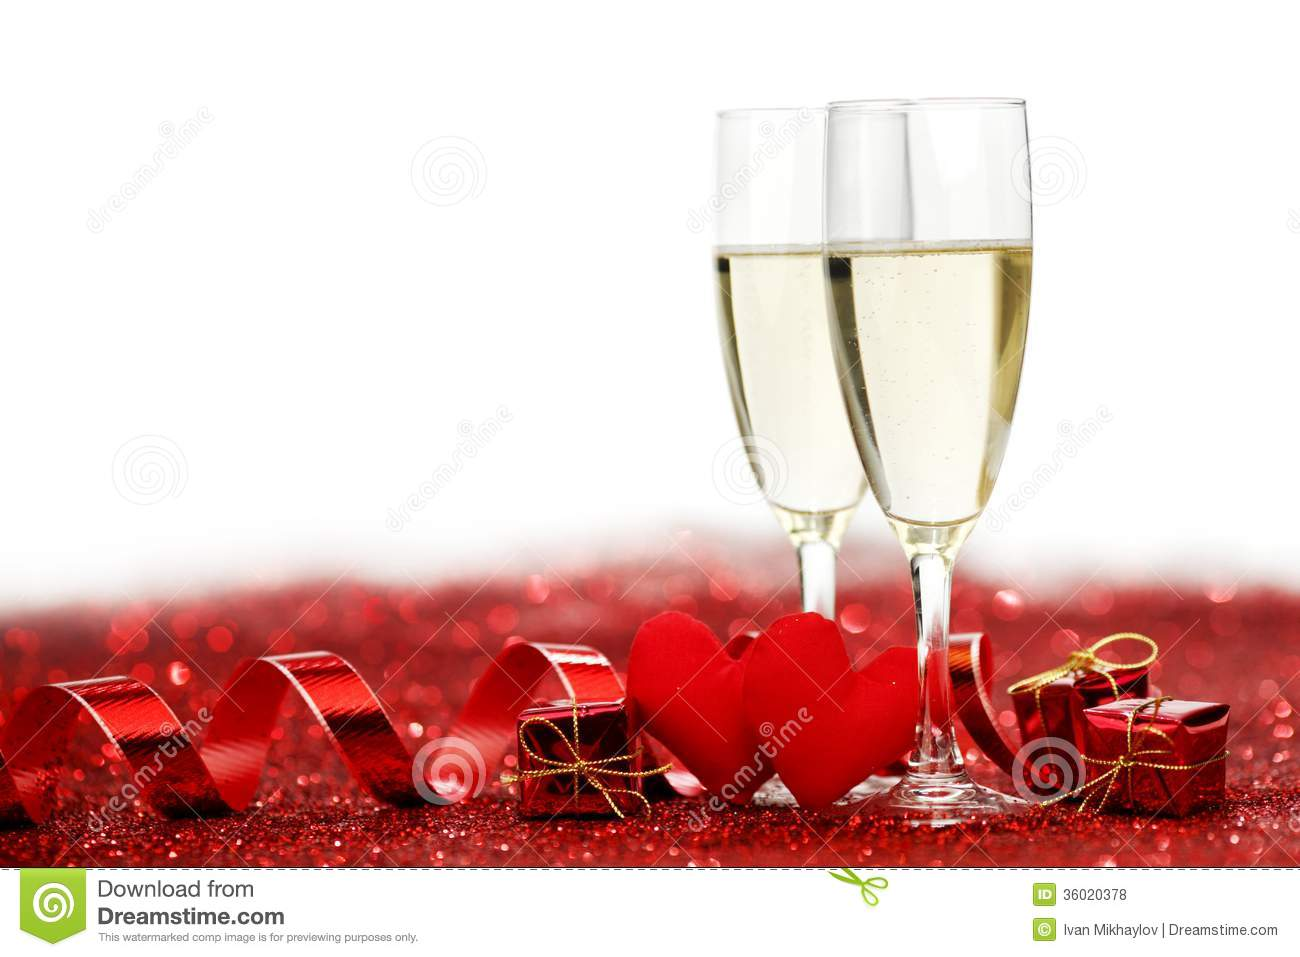 champagne and valentines day decoration stock photo - image: 36020378, Ideas